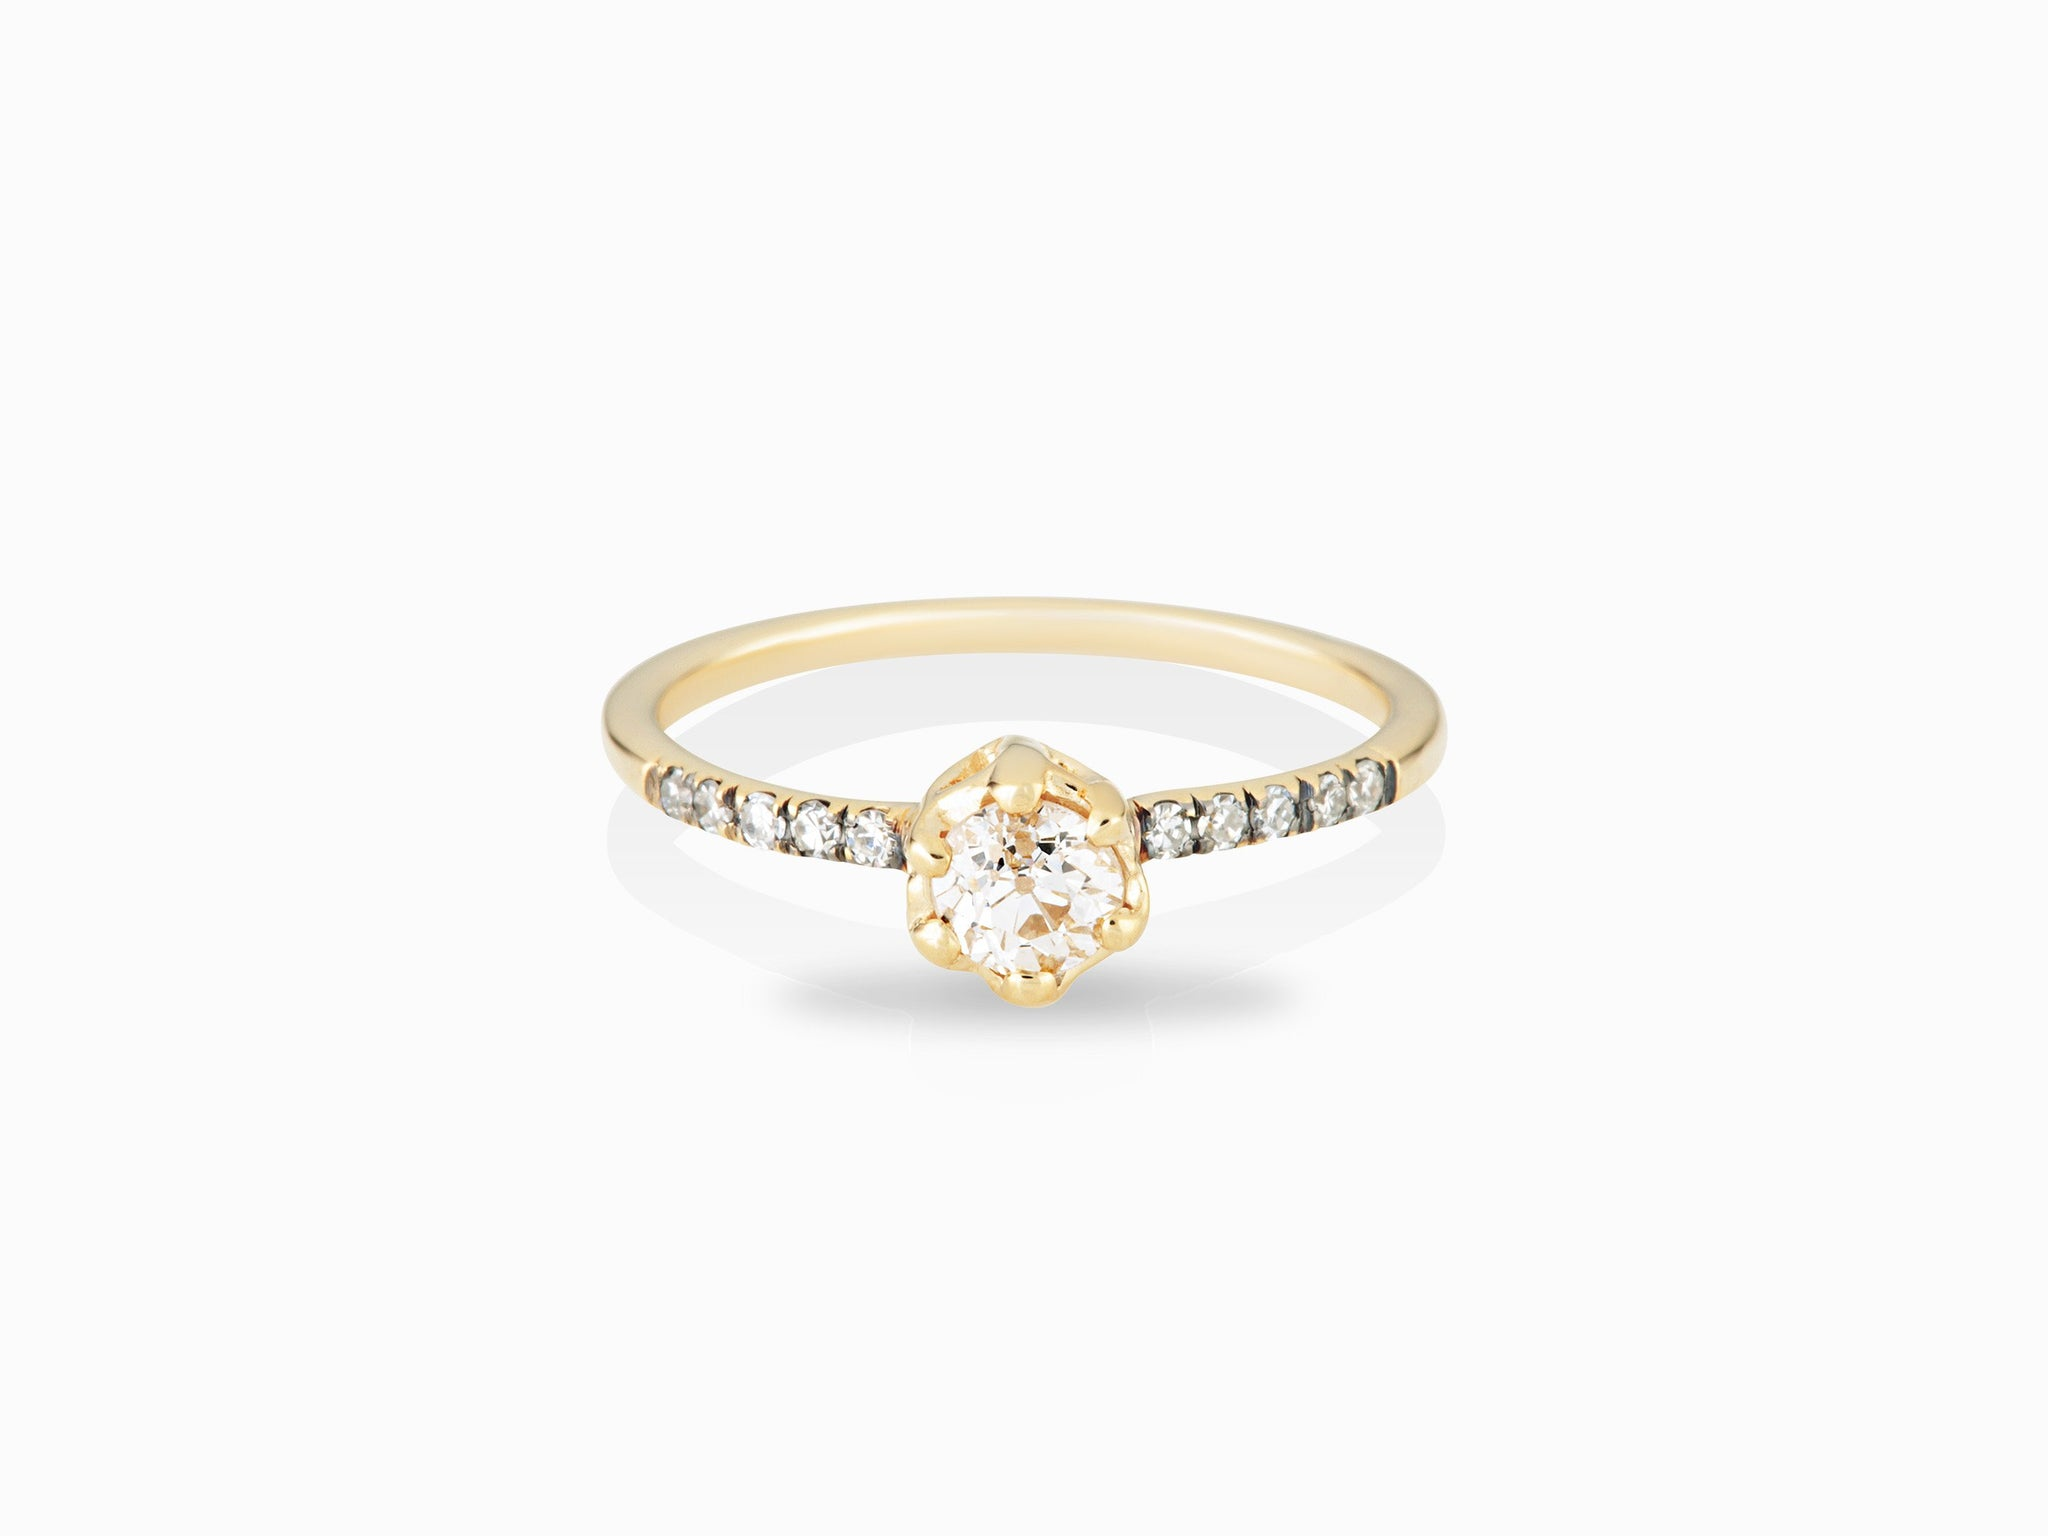 Entity Solitaire Ring - In Stock Now